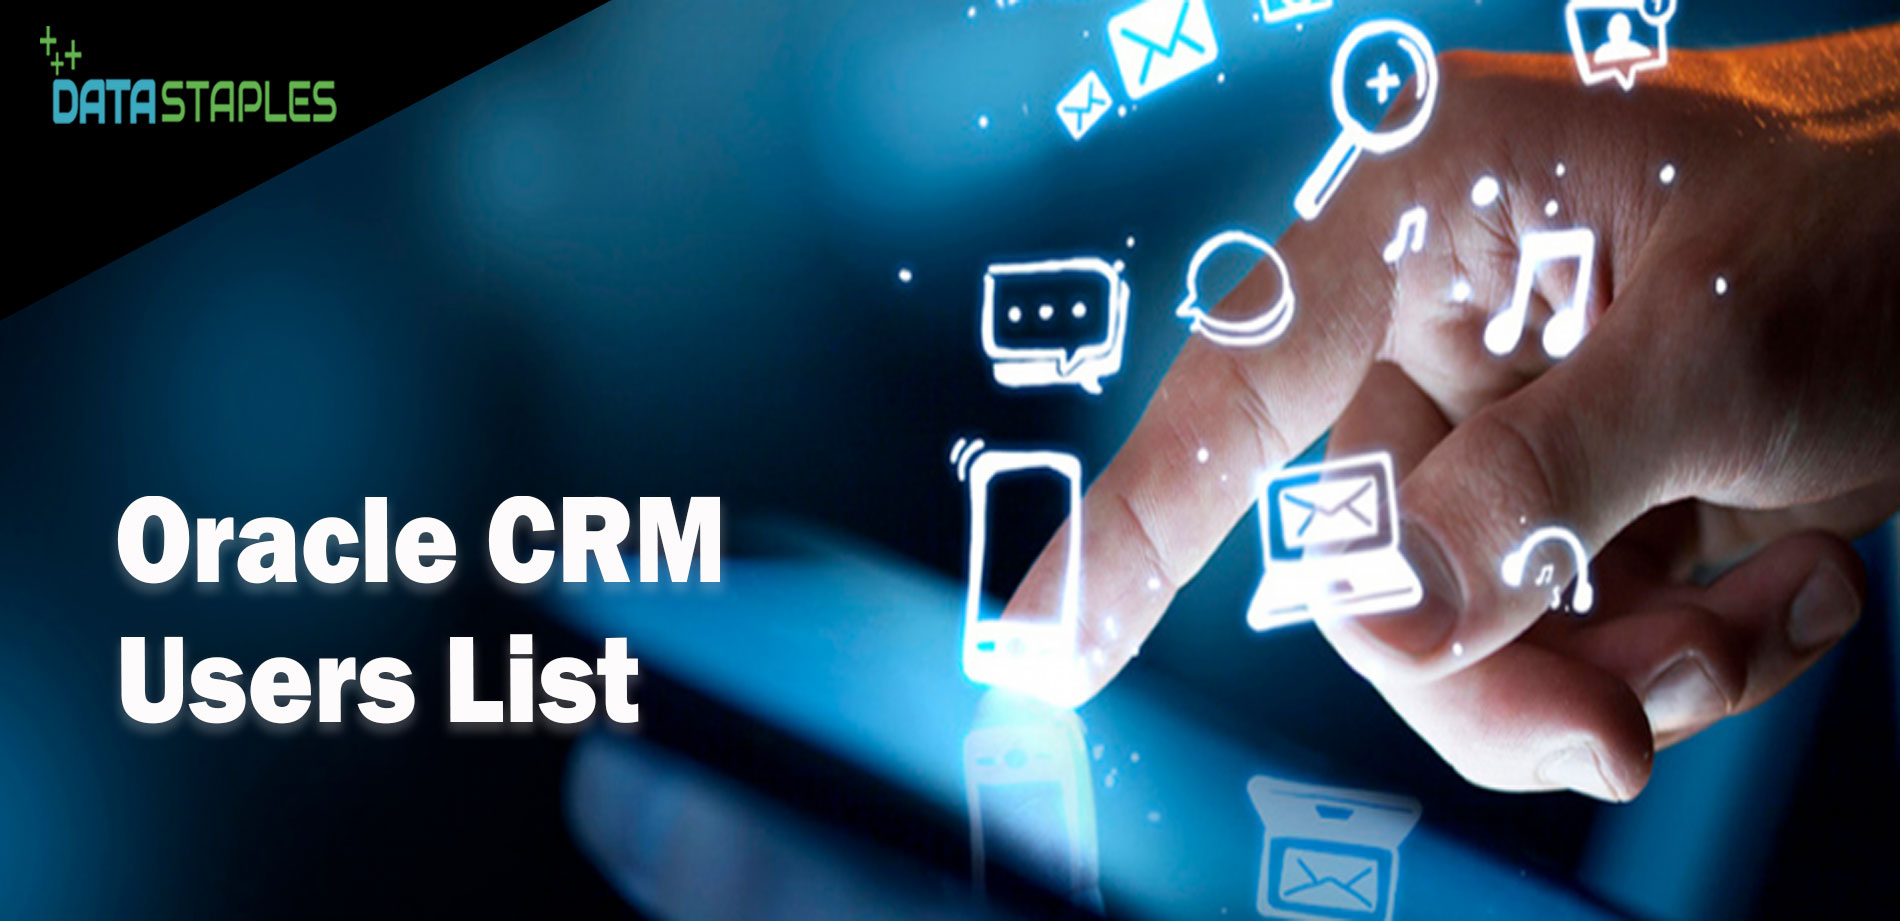 Oracle CRM Users Mailing List | DataStaples